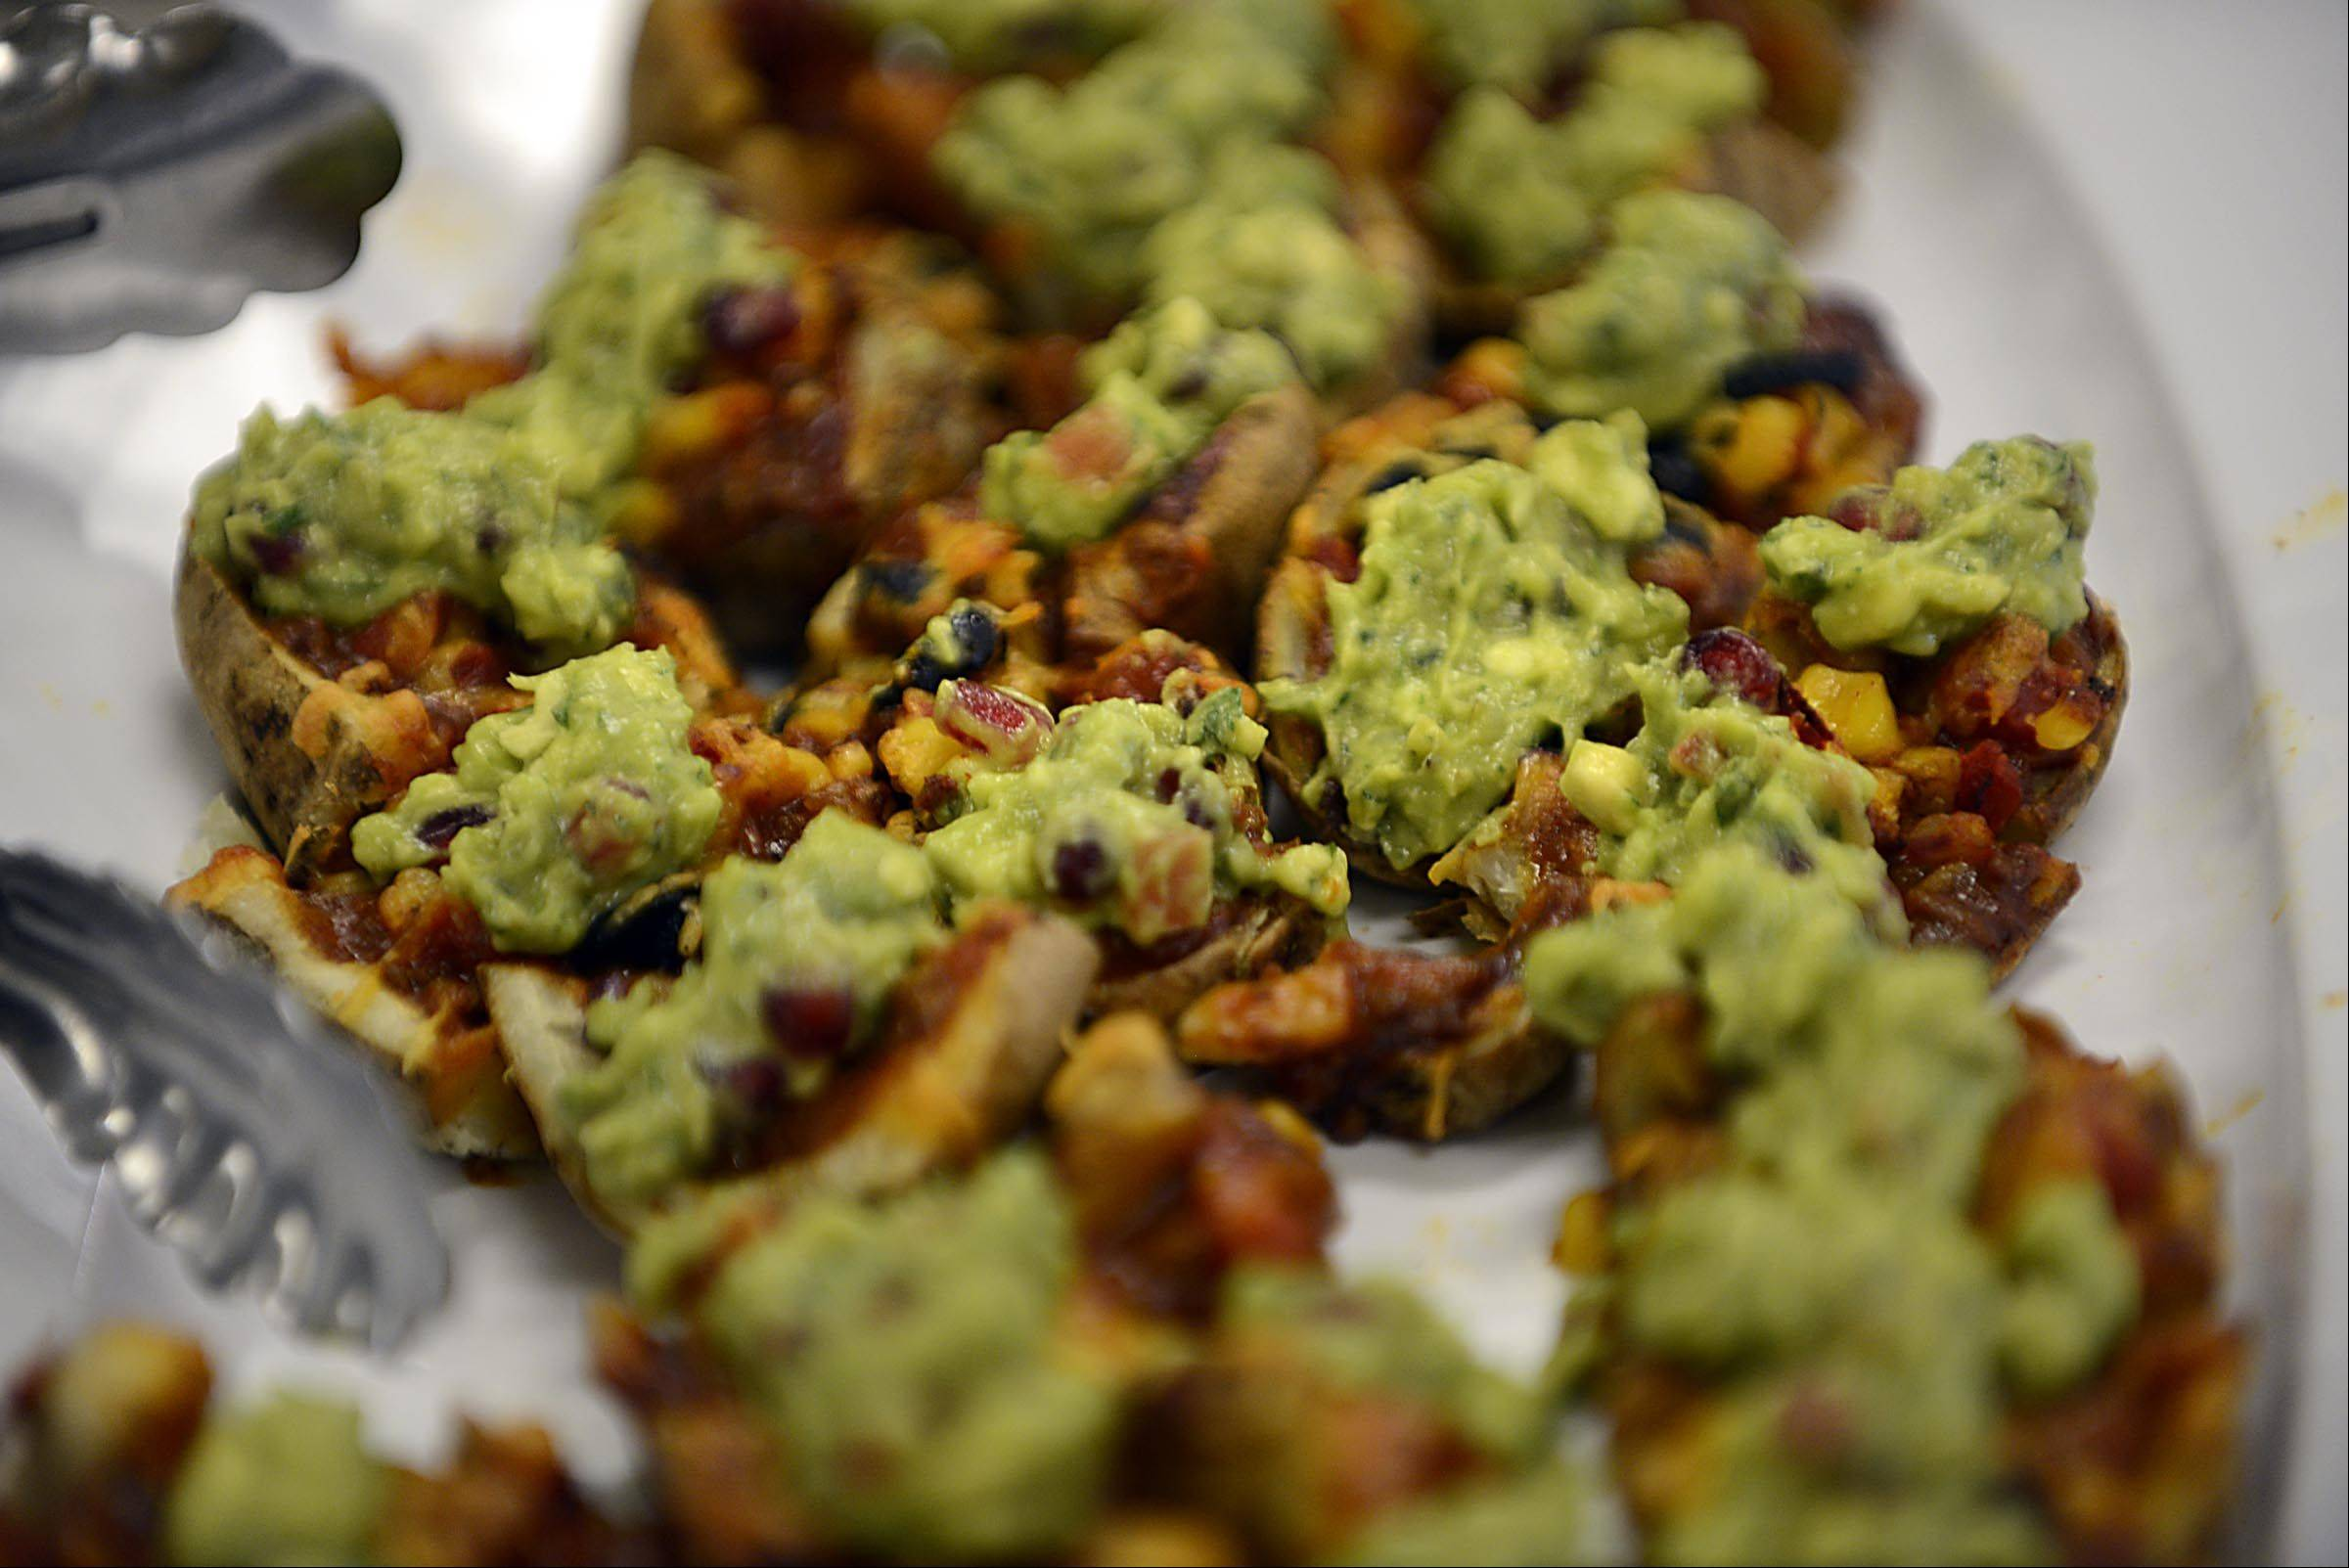 Loaded Nacho Potato Skins are one example of how common food pantry items can be turned into snacks for a Super Bowl bash.